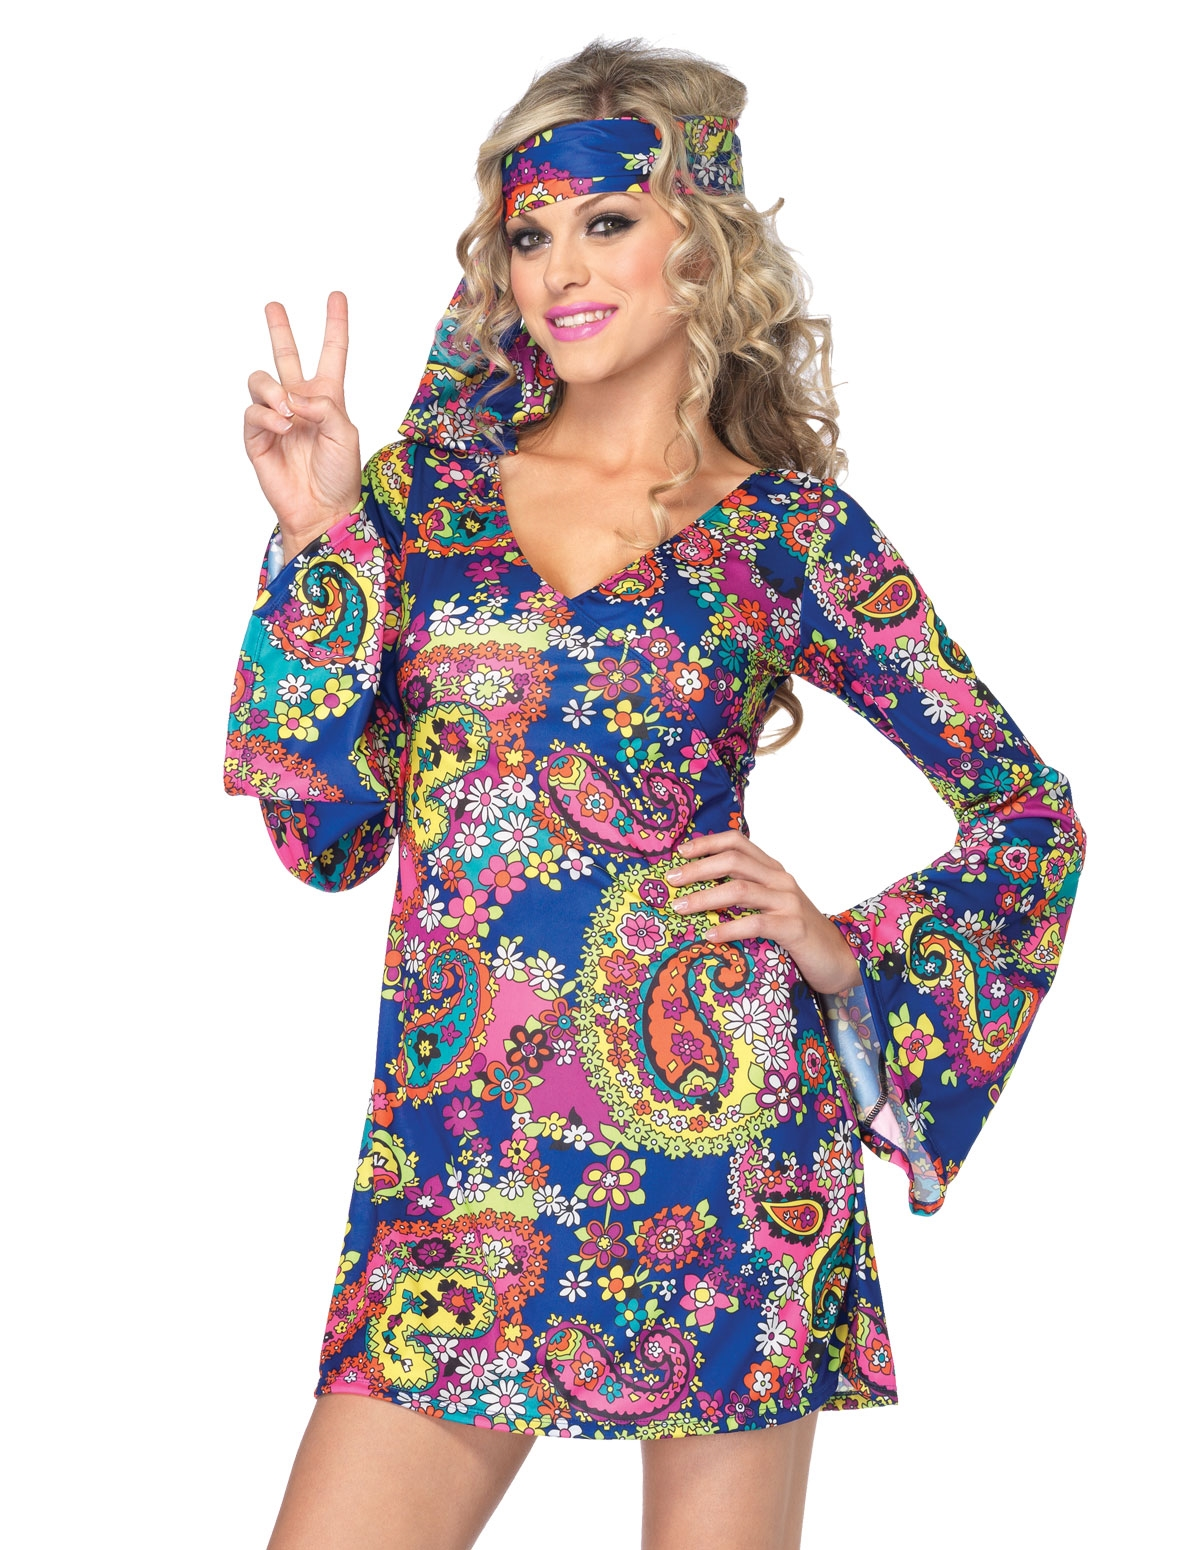 Harmony Hippie Costume  Lovers Lane-7081